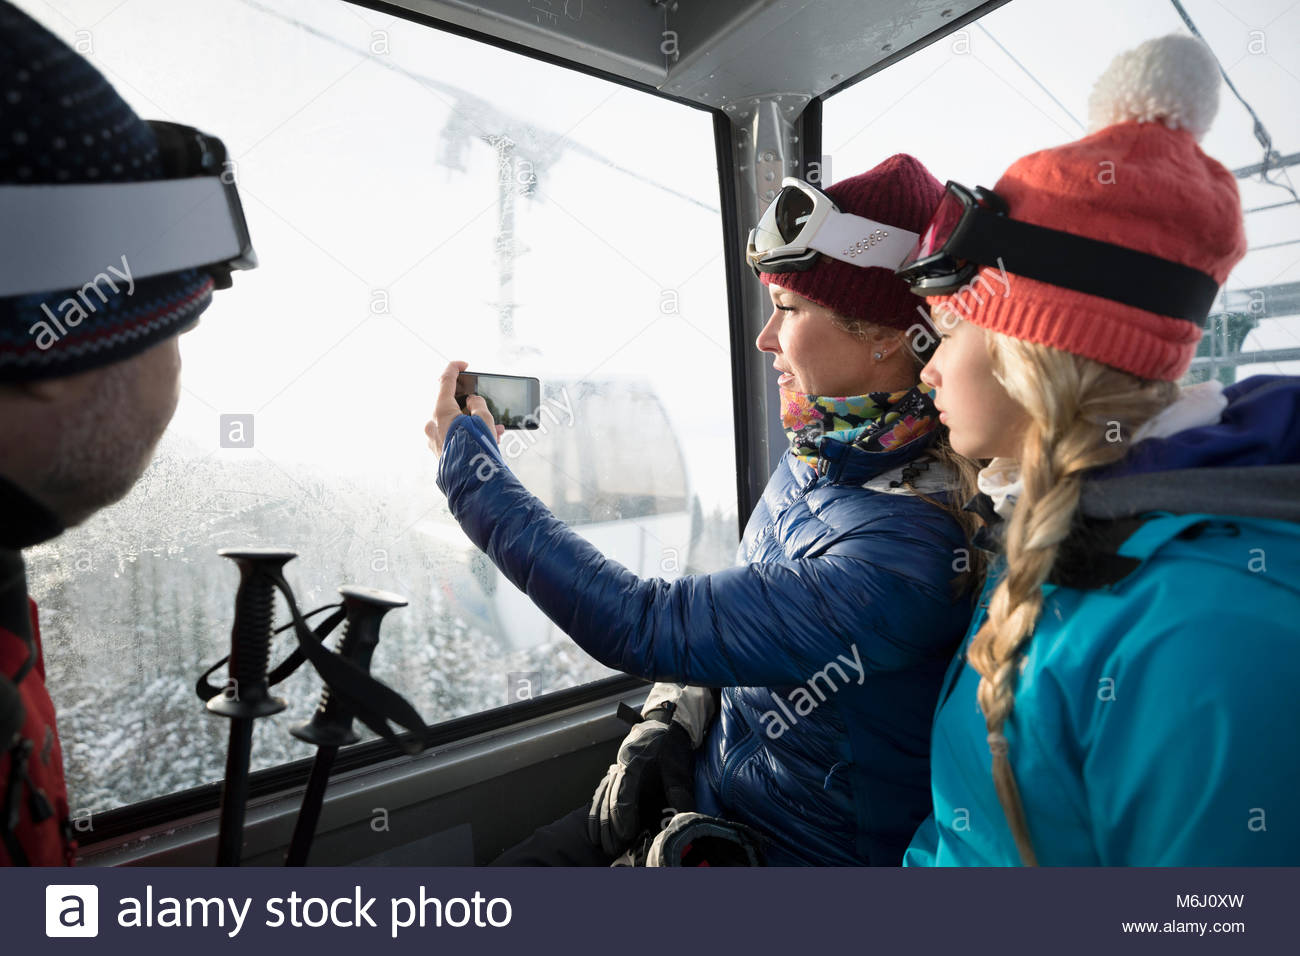 Family skiers riding gondola, photographing view with camera phone - Stock Image